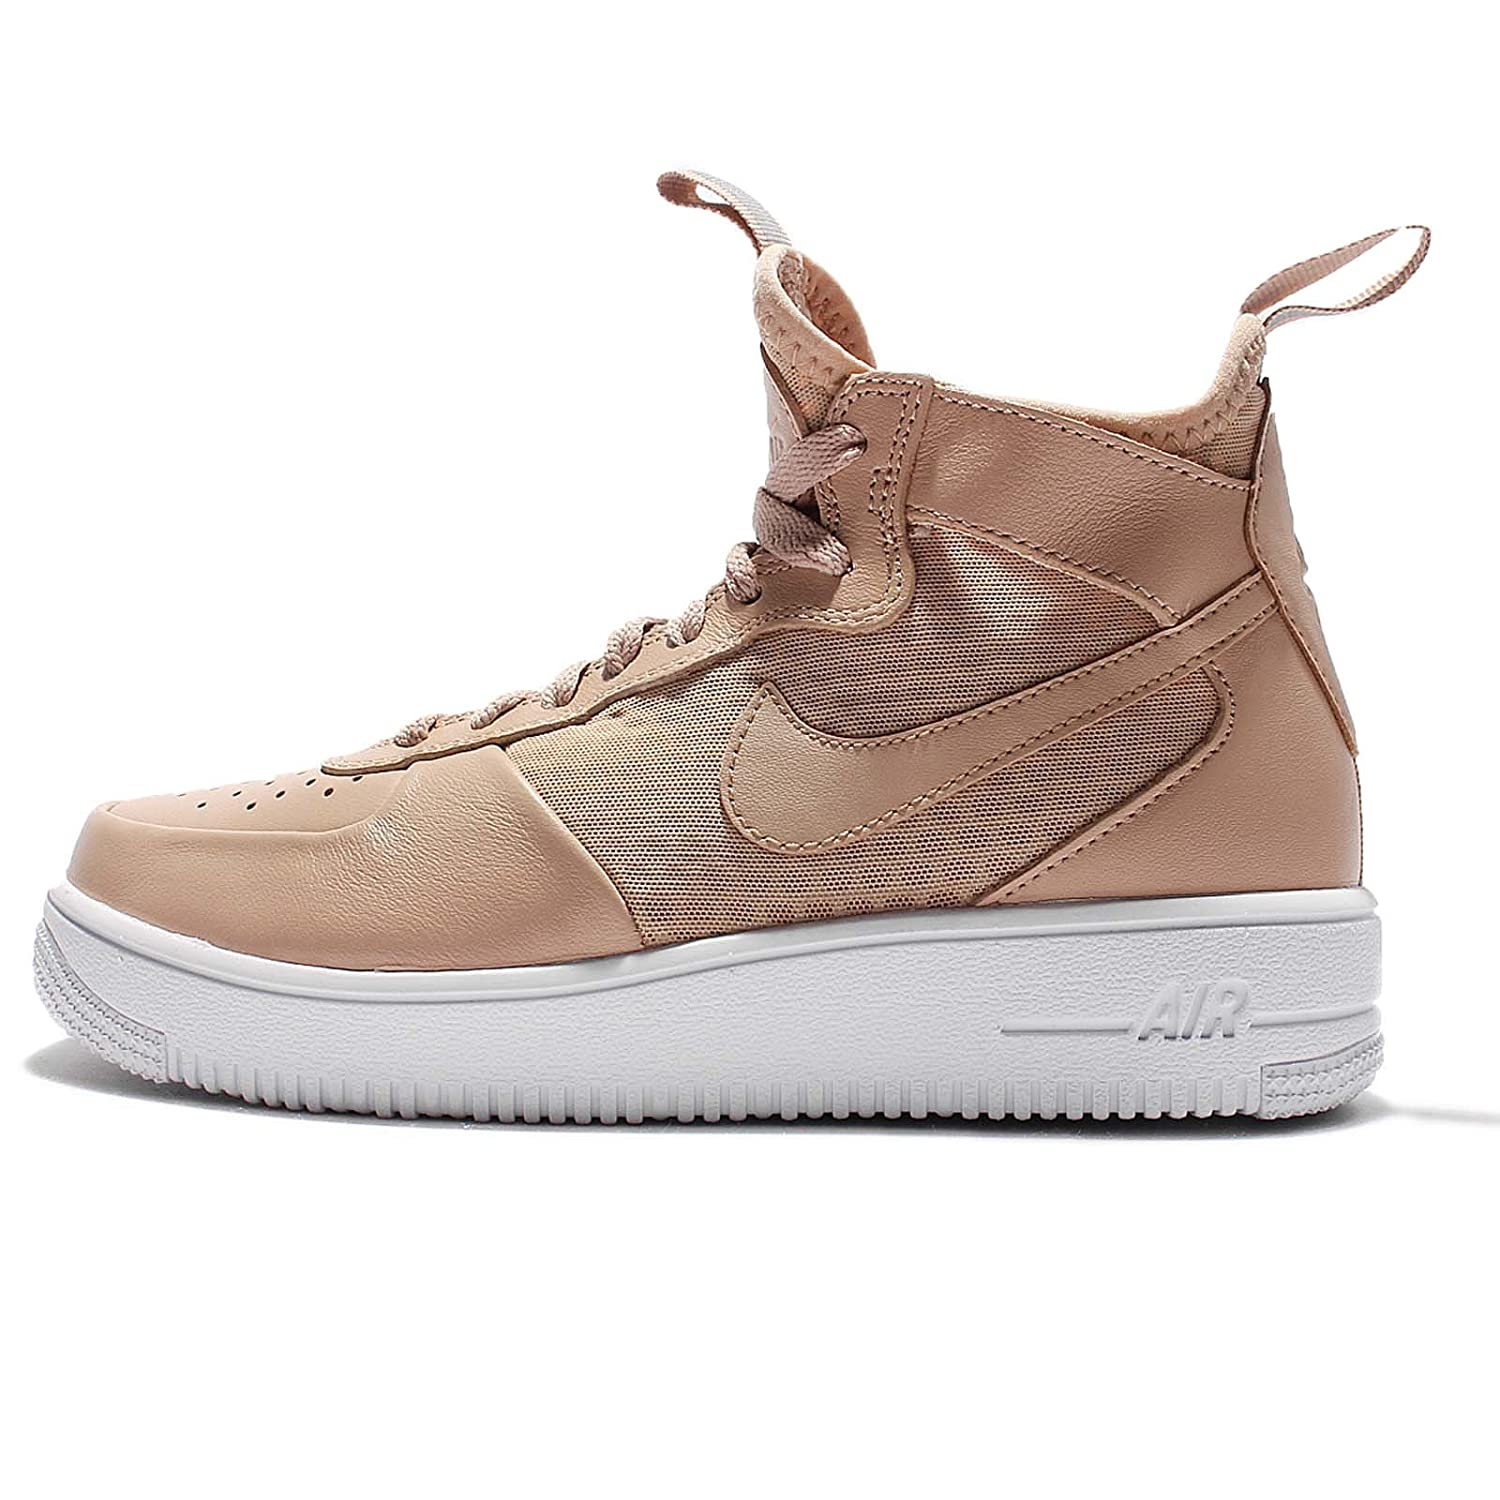 new style ad18e 79643 Amazon.com   NIKE Air Force 1 Ultra Force Mid Warrior Womens Shoes 864025- 200 (6)   Fashion Sneakers